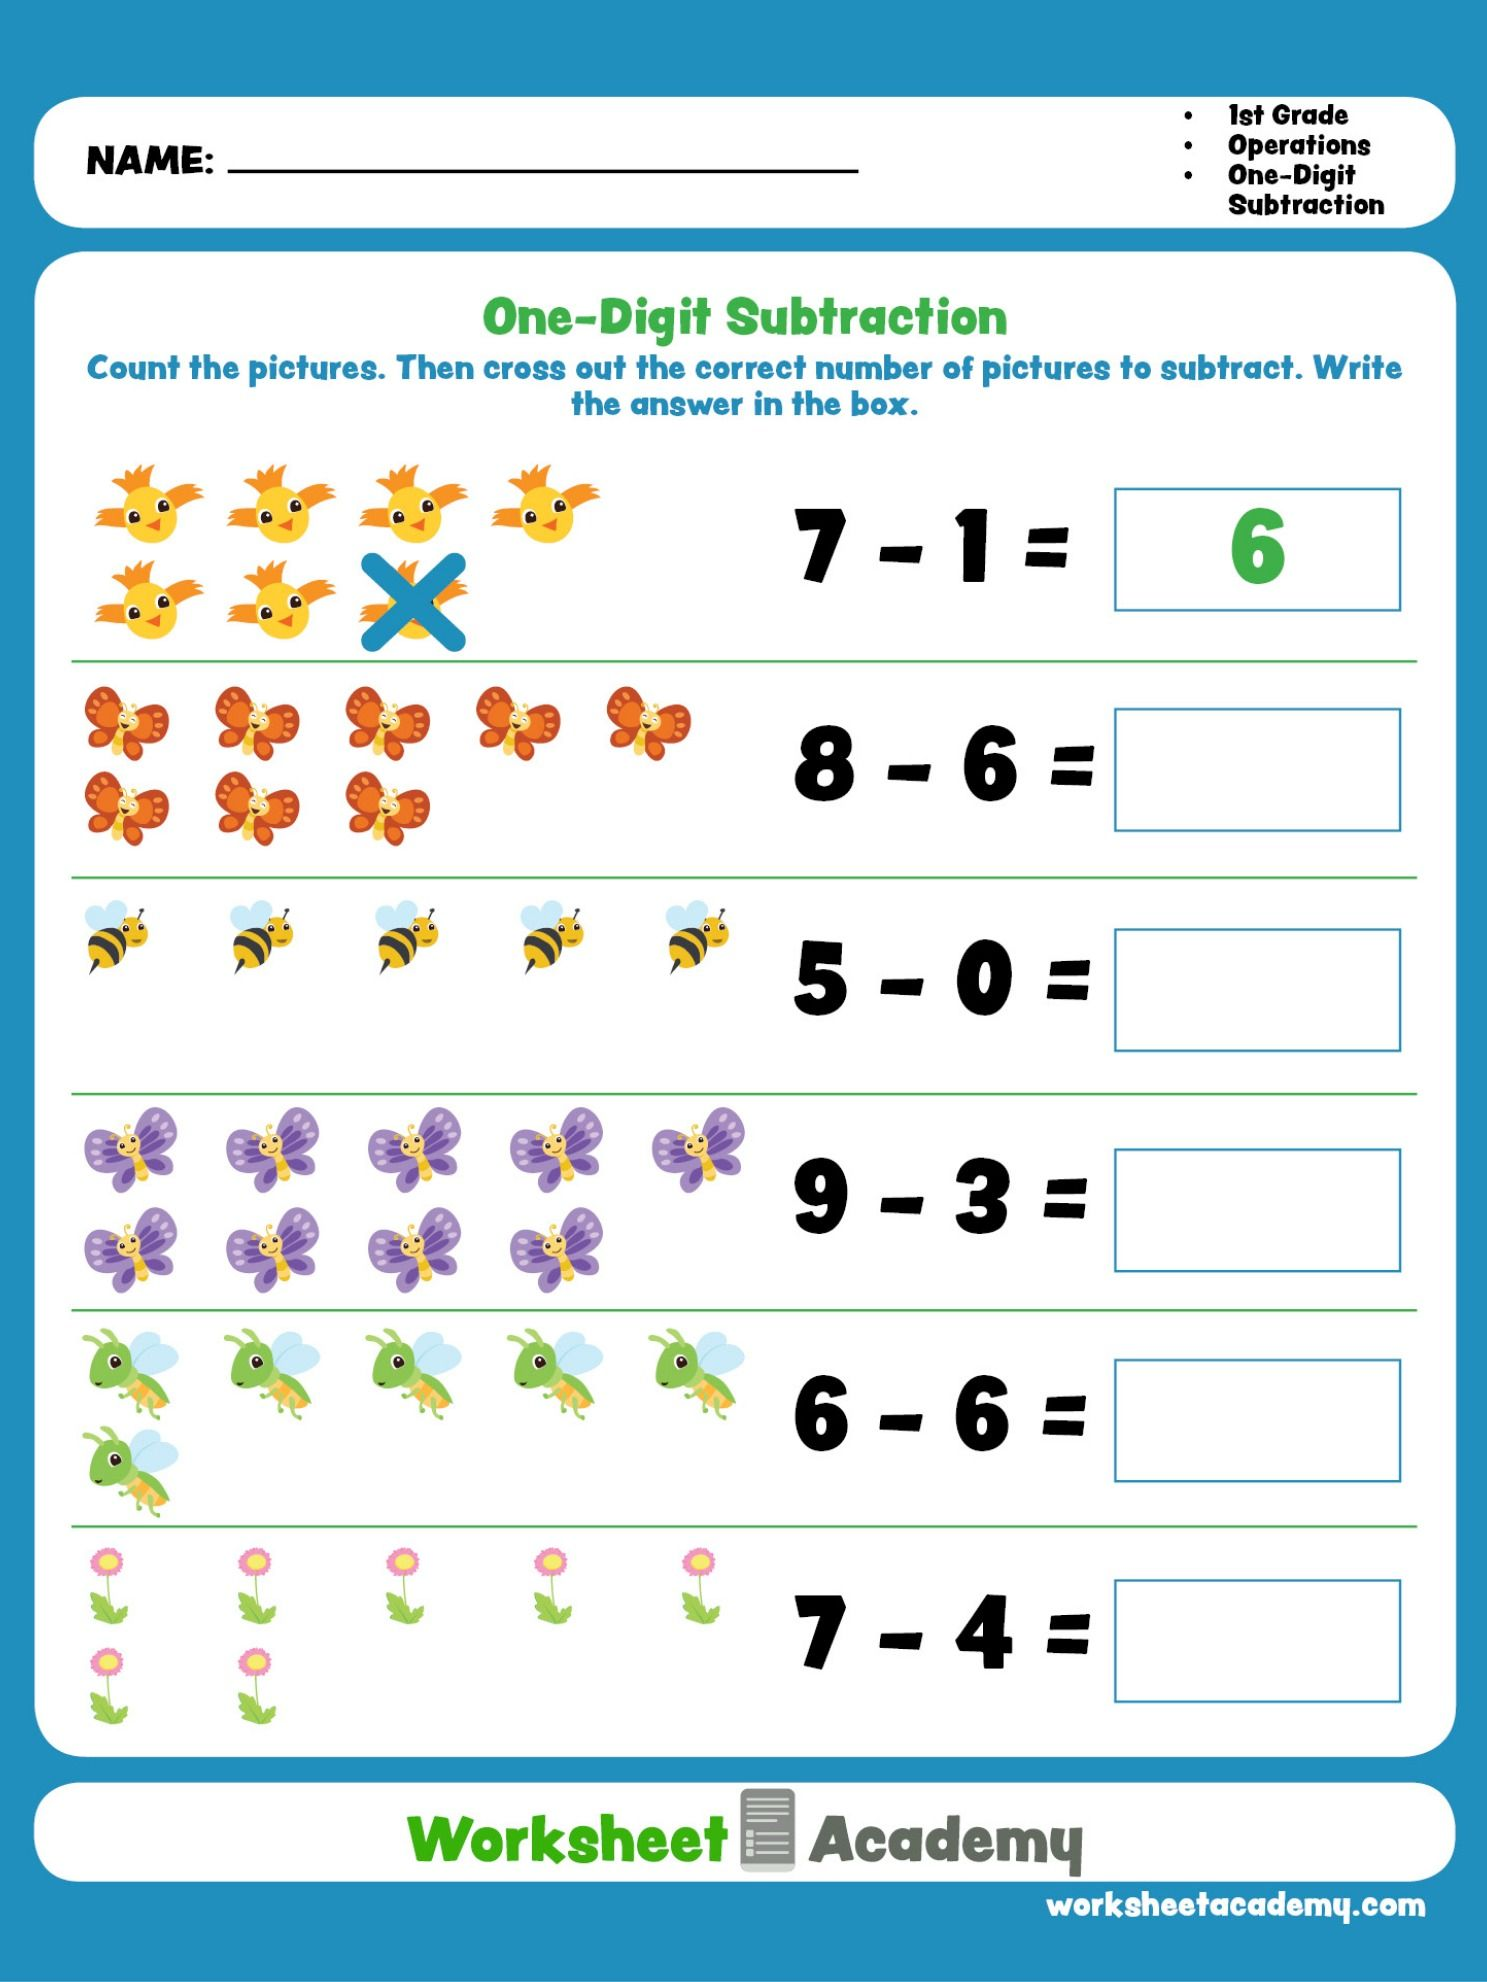 hight resolution of Education Subtraction Worksheets   Printable Worksheets and Activities for  Teachers